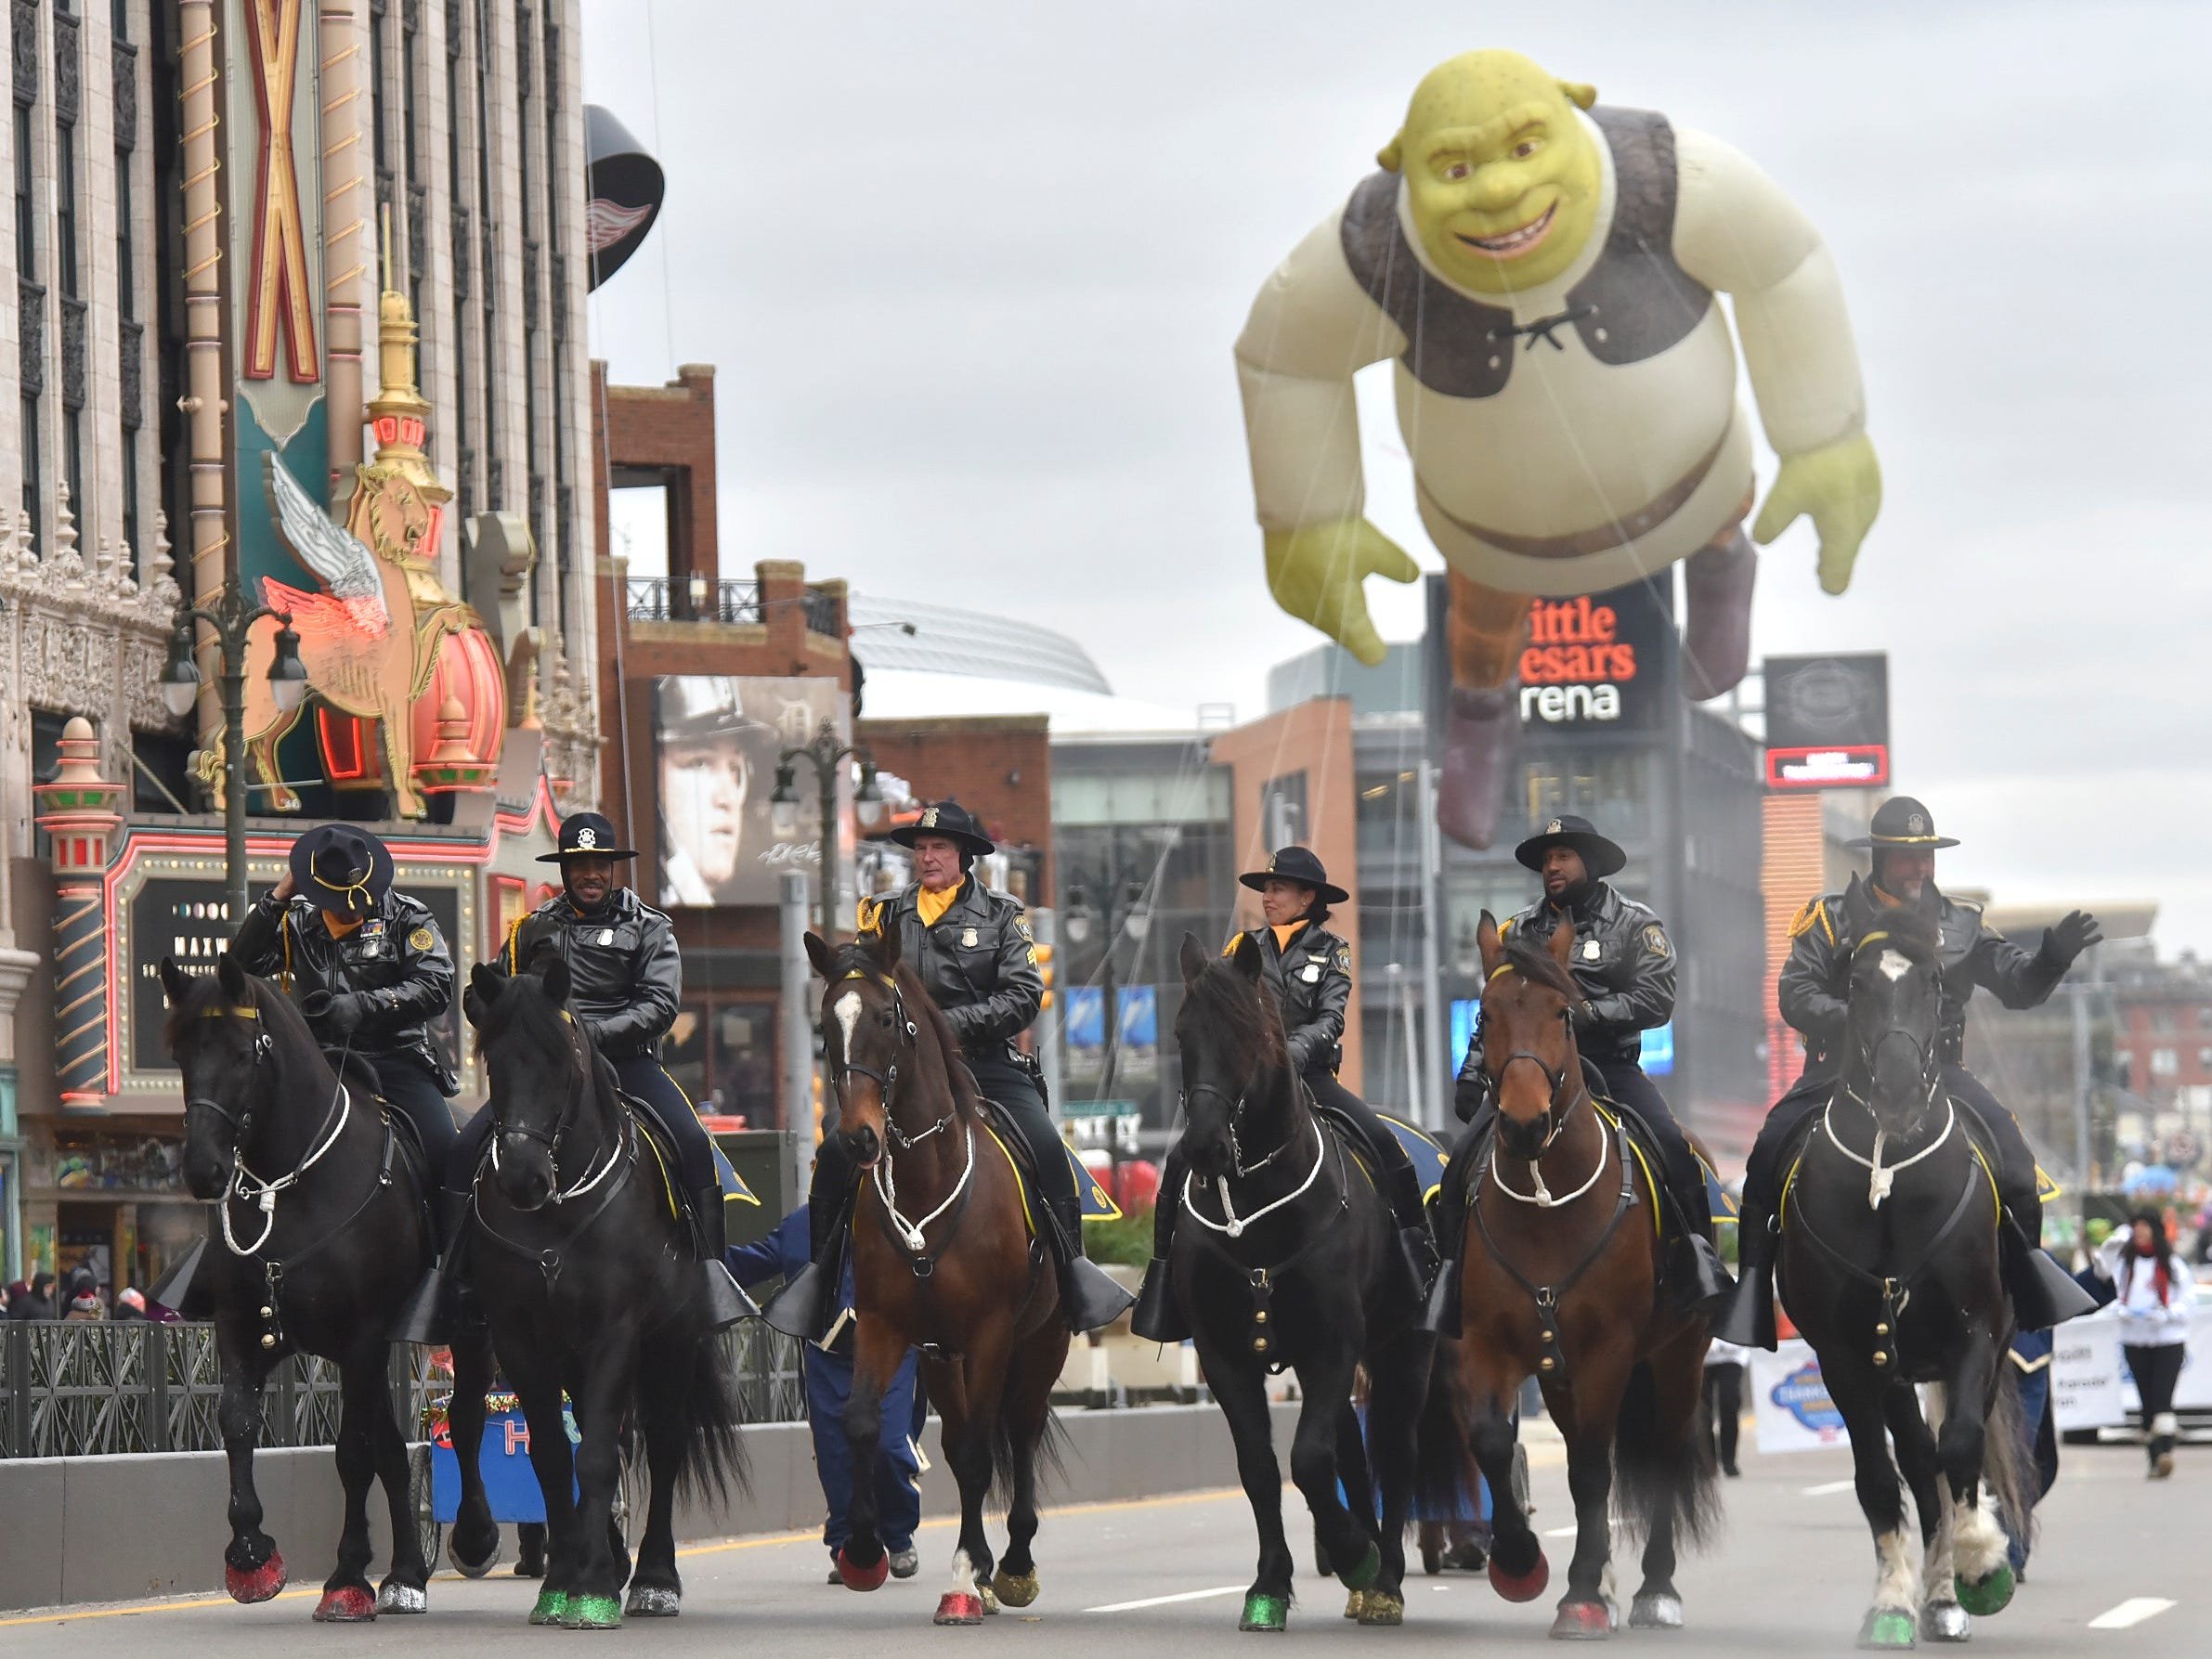 The Detroit Police Department Mounted Unit rides at the front of the parade.